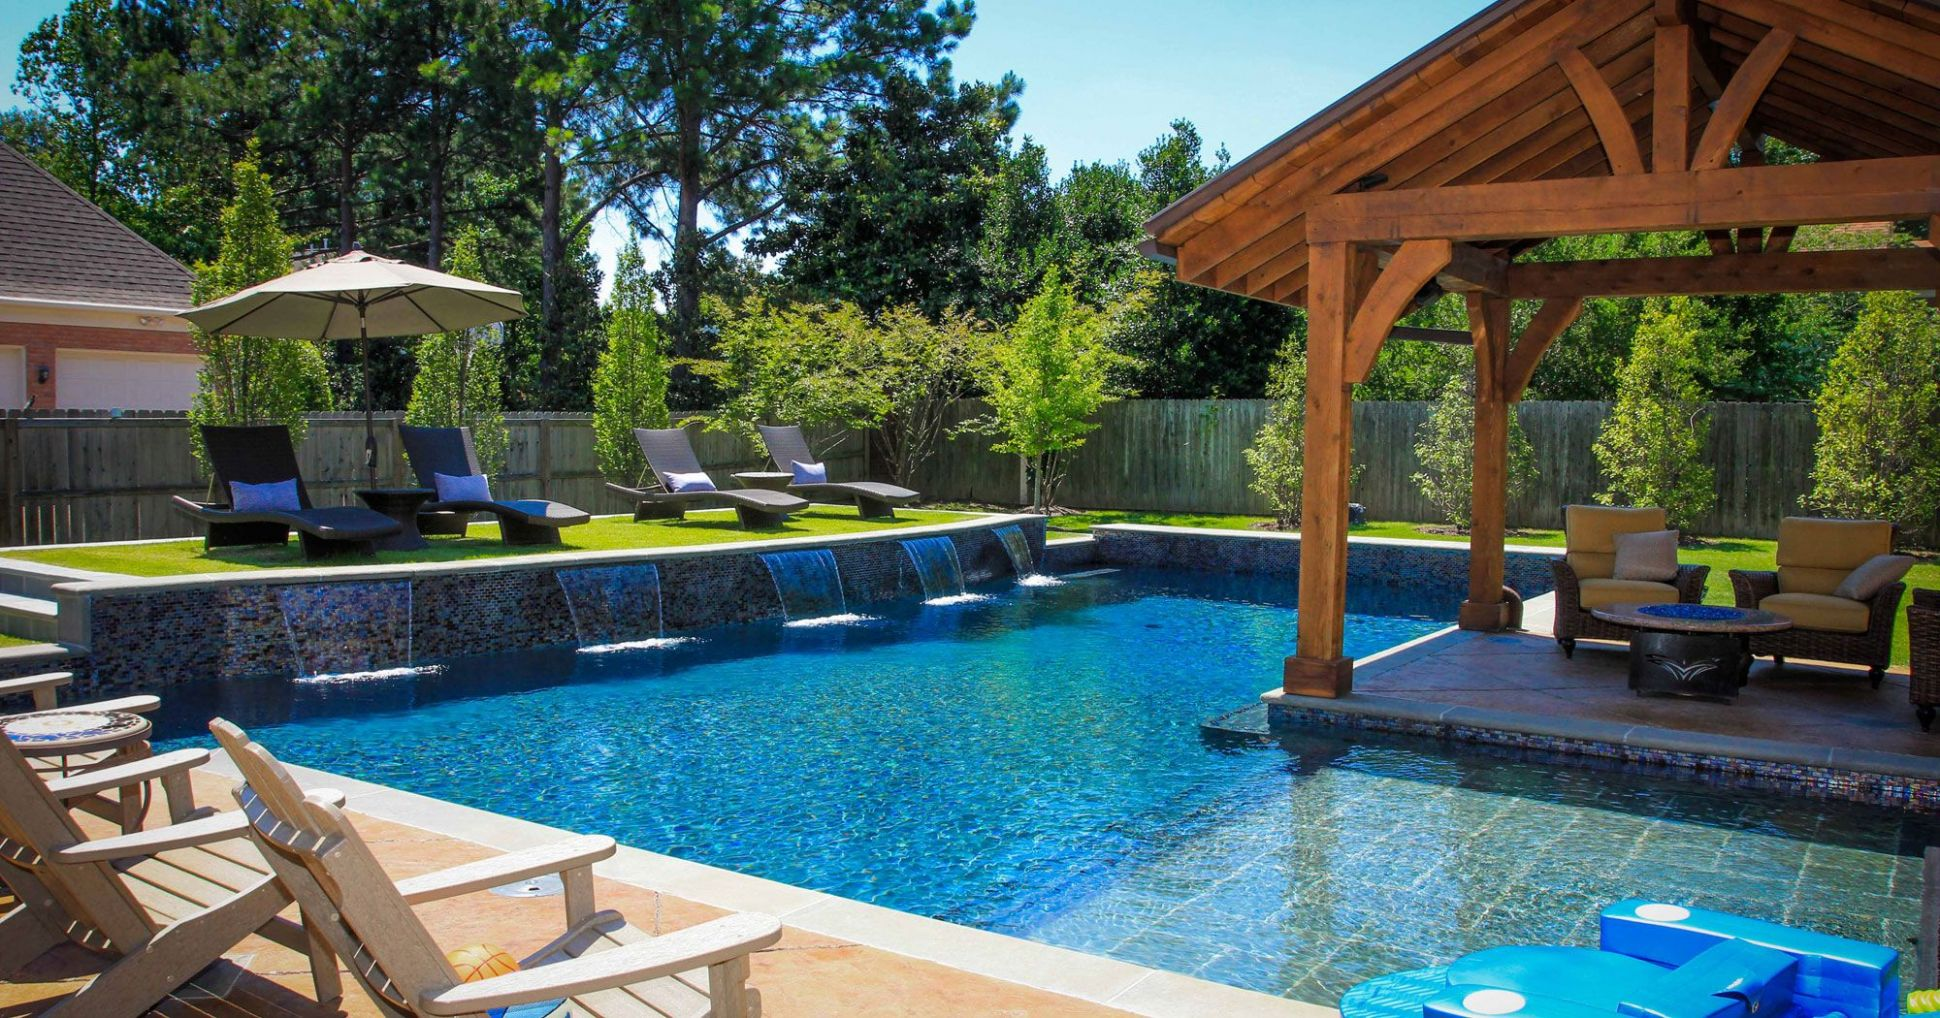 10 Backyard Pool Ideas for the Wealthy Homeowner (With images ...